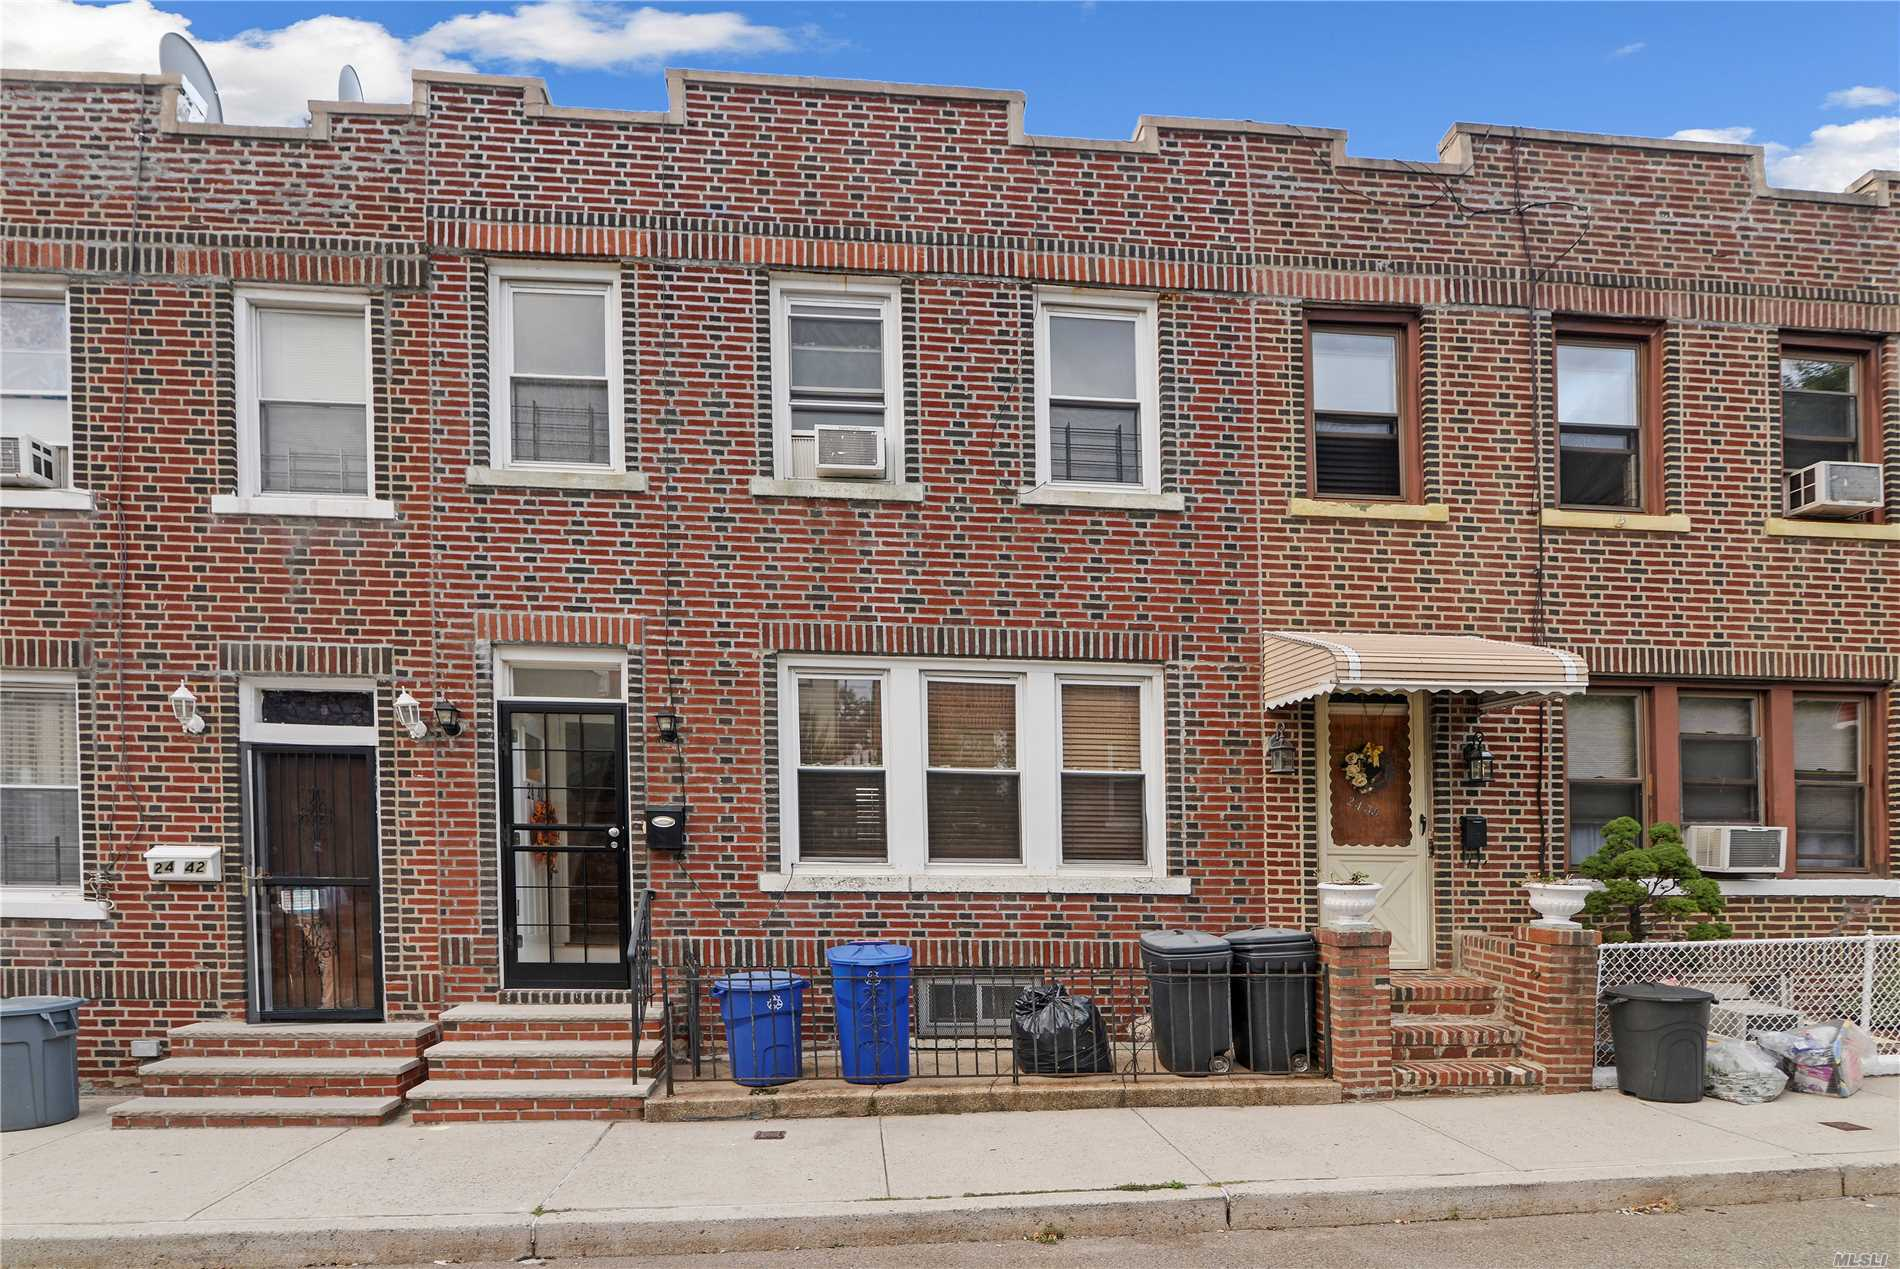 Located 1 Block To Astoria Blvd Train Station This One Family Brick Town Hous3 Offers 3 Bedrooms, A 1 Car Garage, Beautiful Original Parquet Floors, And A Private Backyard Area For Entertaining. Newer Gas Heat And Updated Windows.